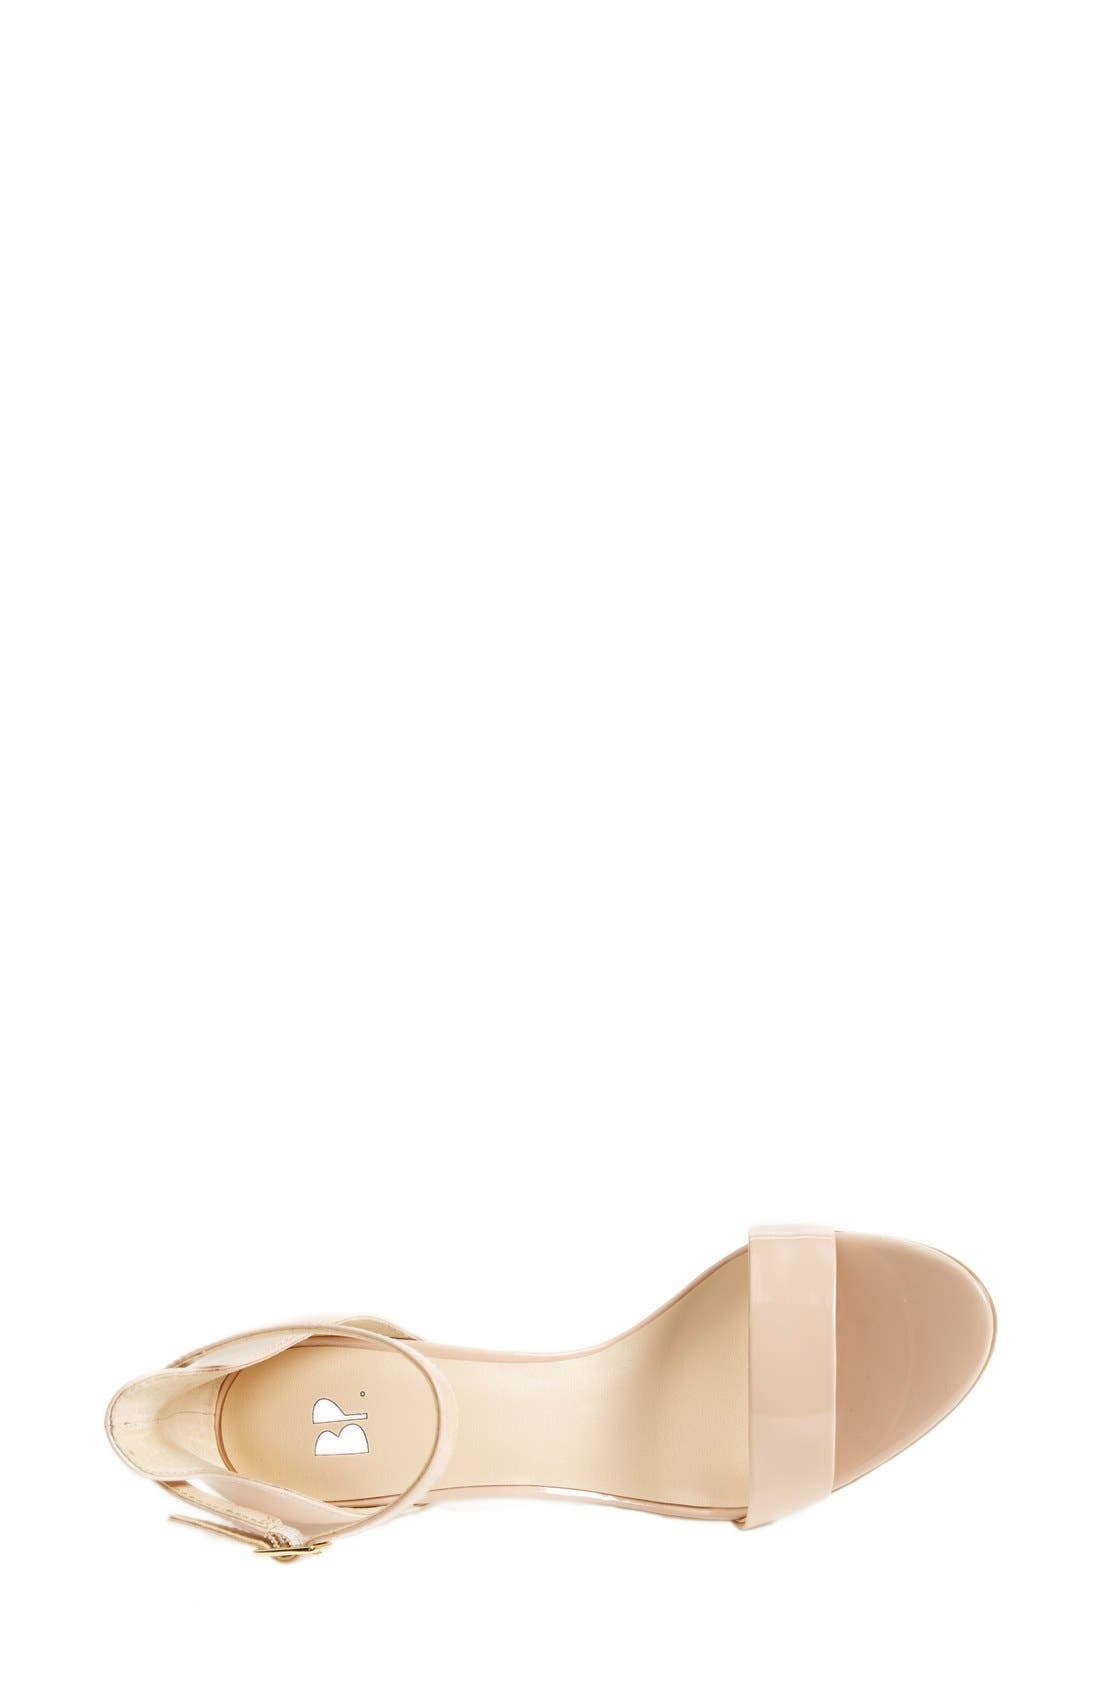 Alternate Image 3  - BP. 'Luminate' Open Toe Dress Sandal (Women)